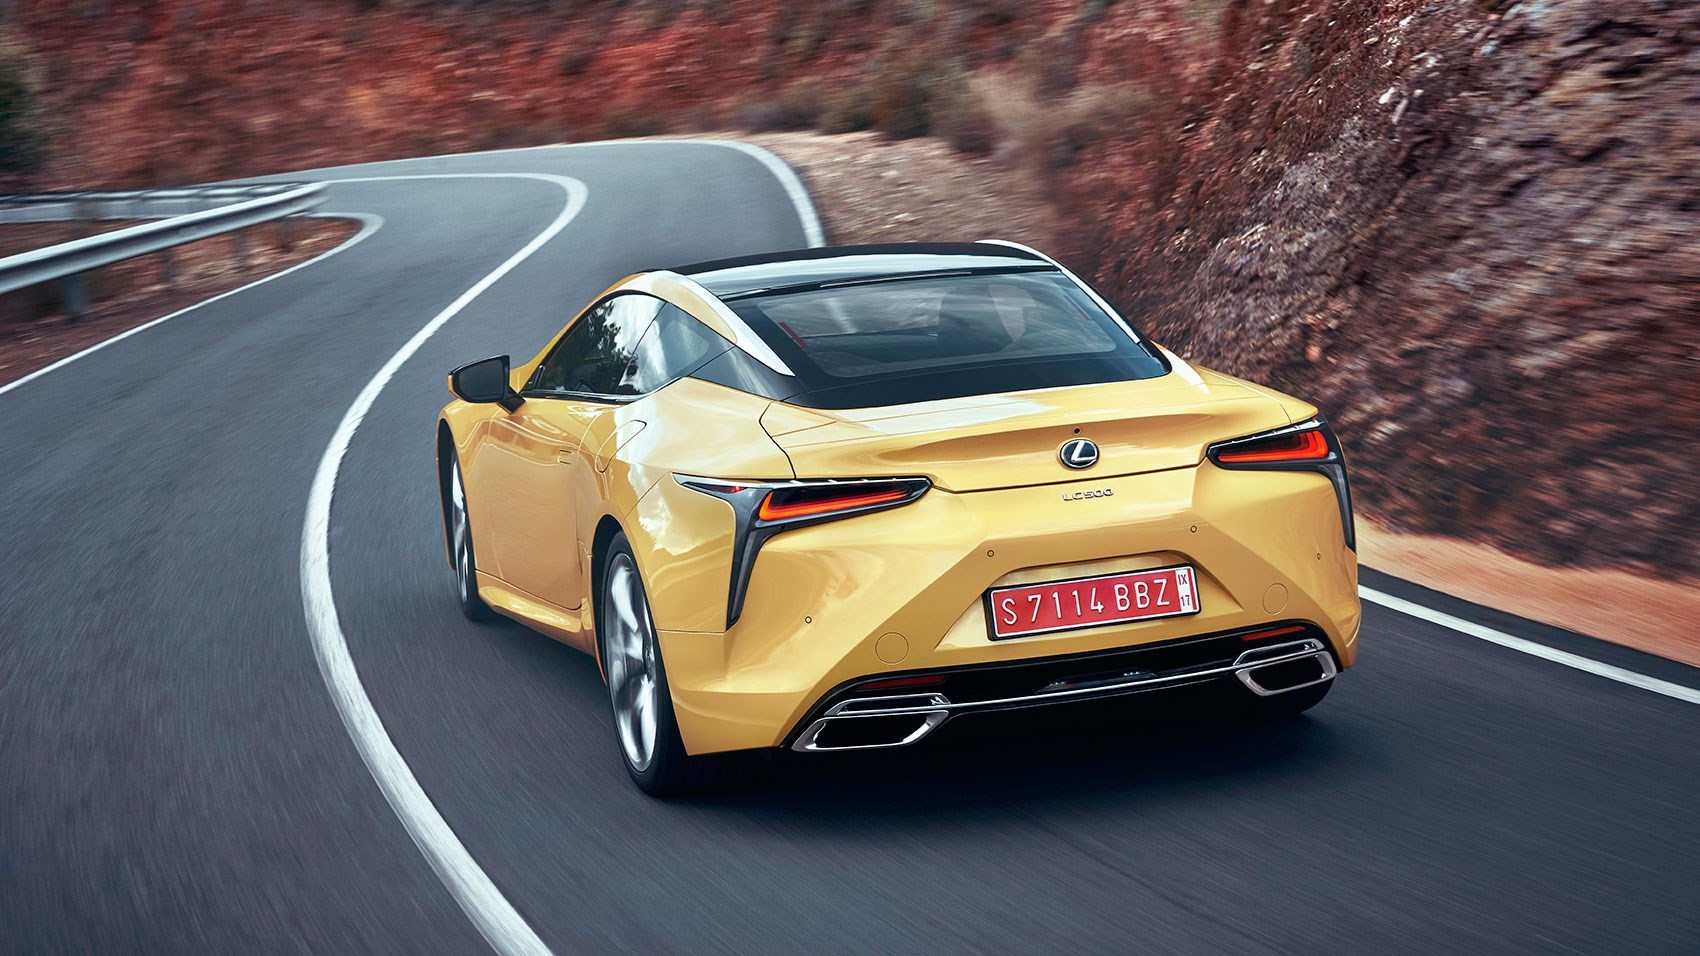 Lexus LC price: from £74,000 in the UK